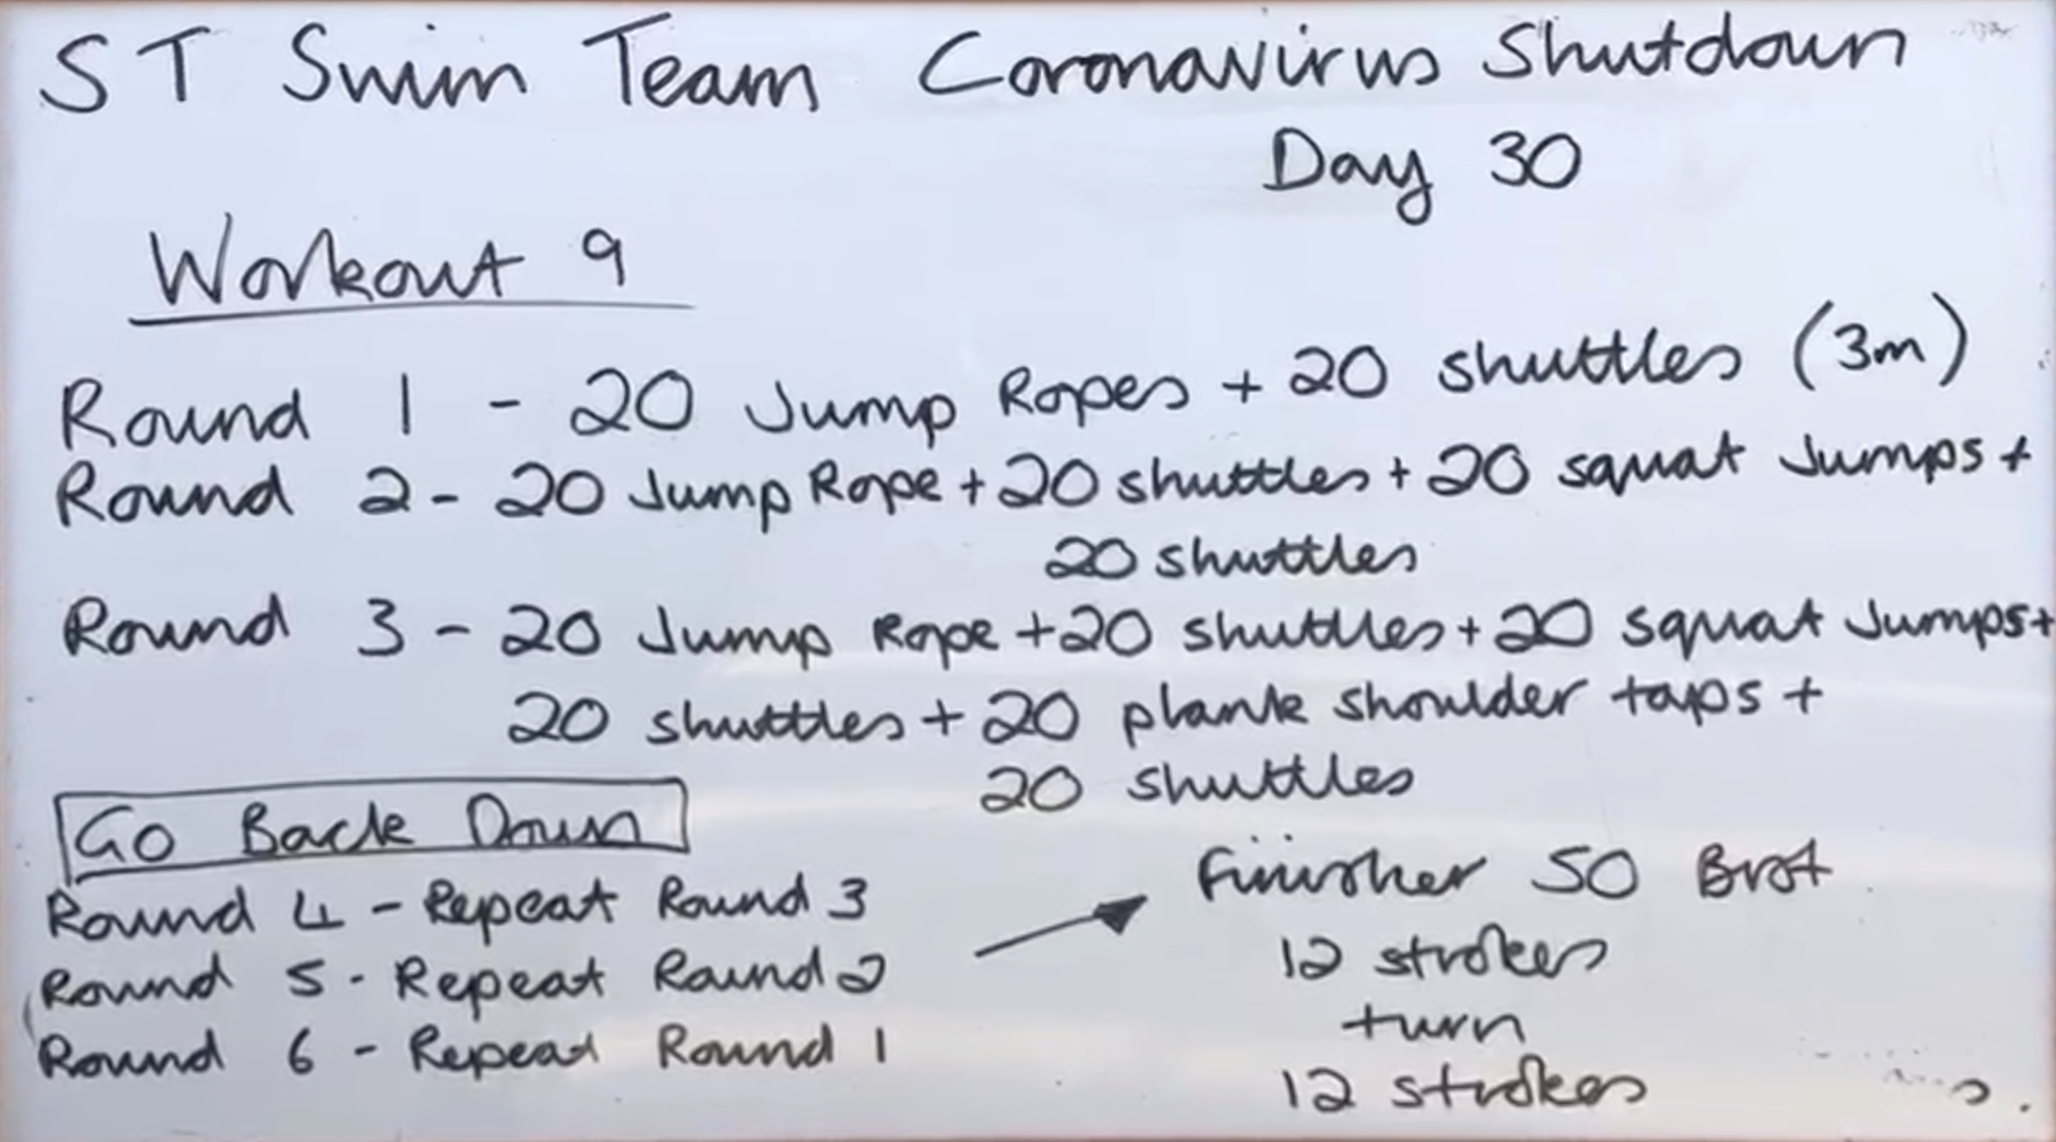 STSC Team Workout 9